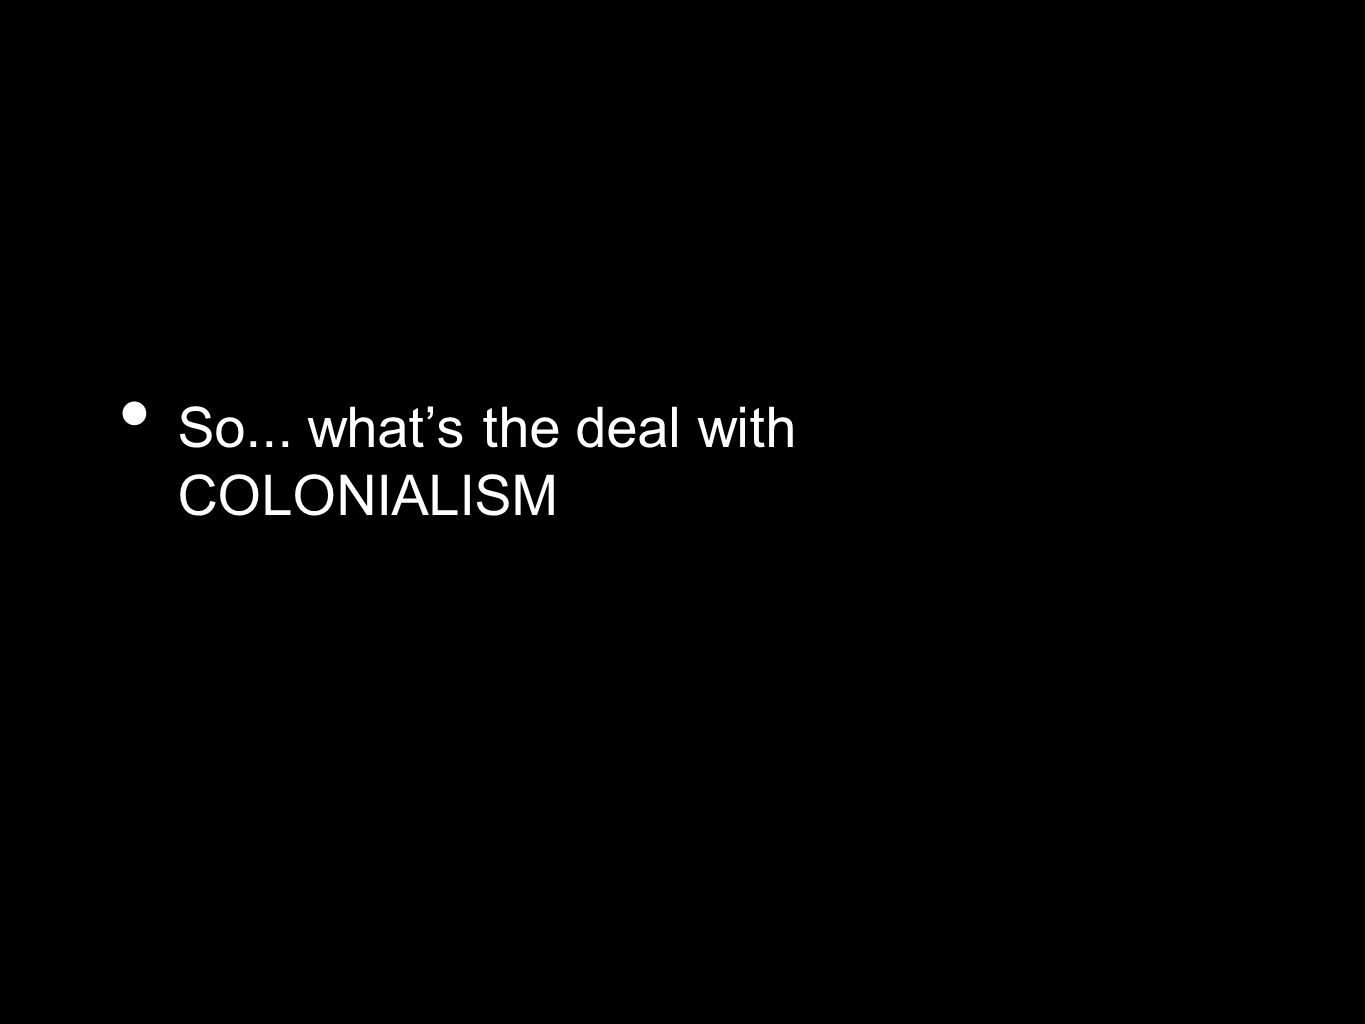 So... what's the deal with COLONIALISM